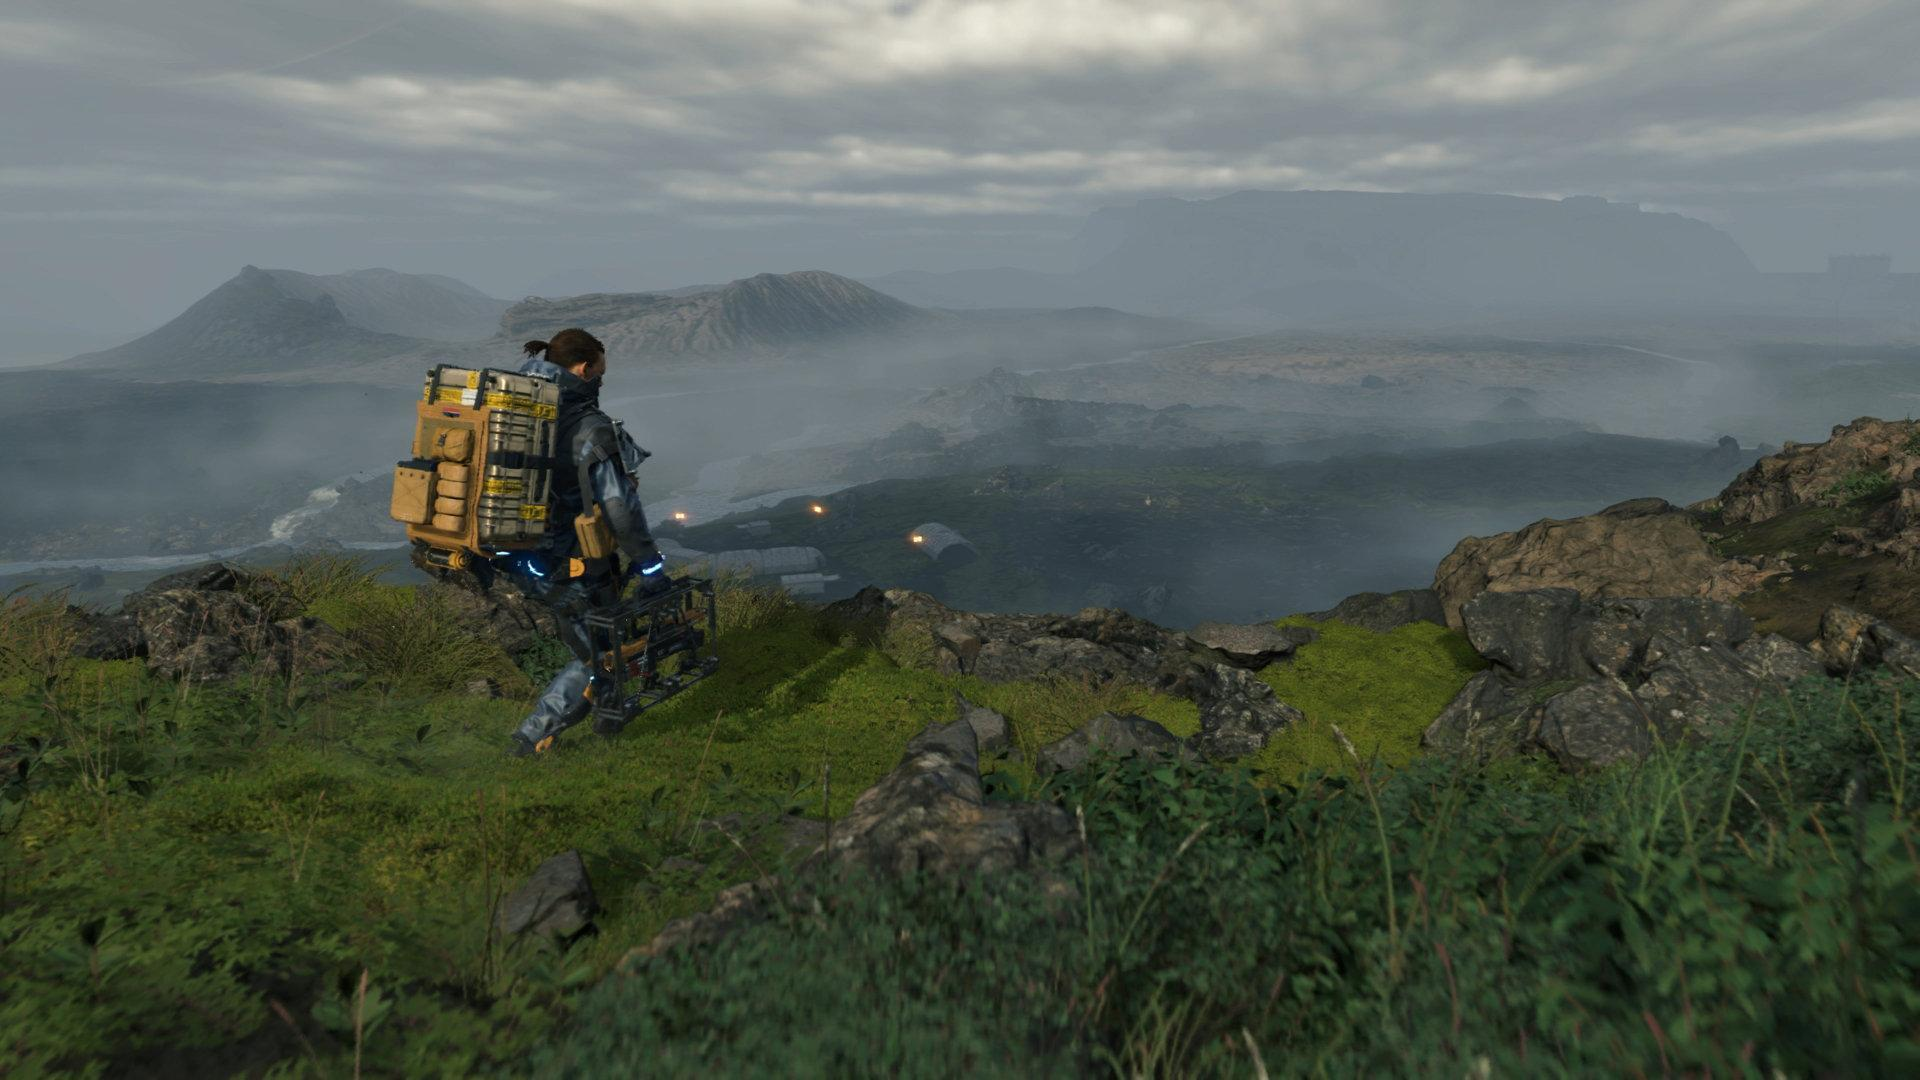 Some Landscapes of the game